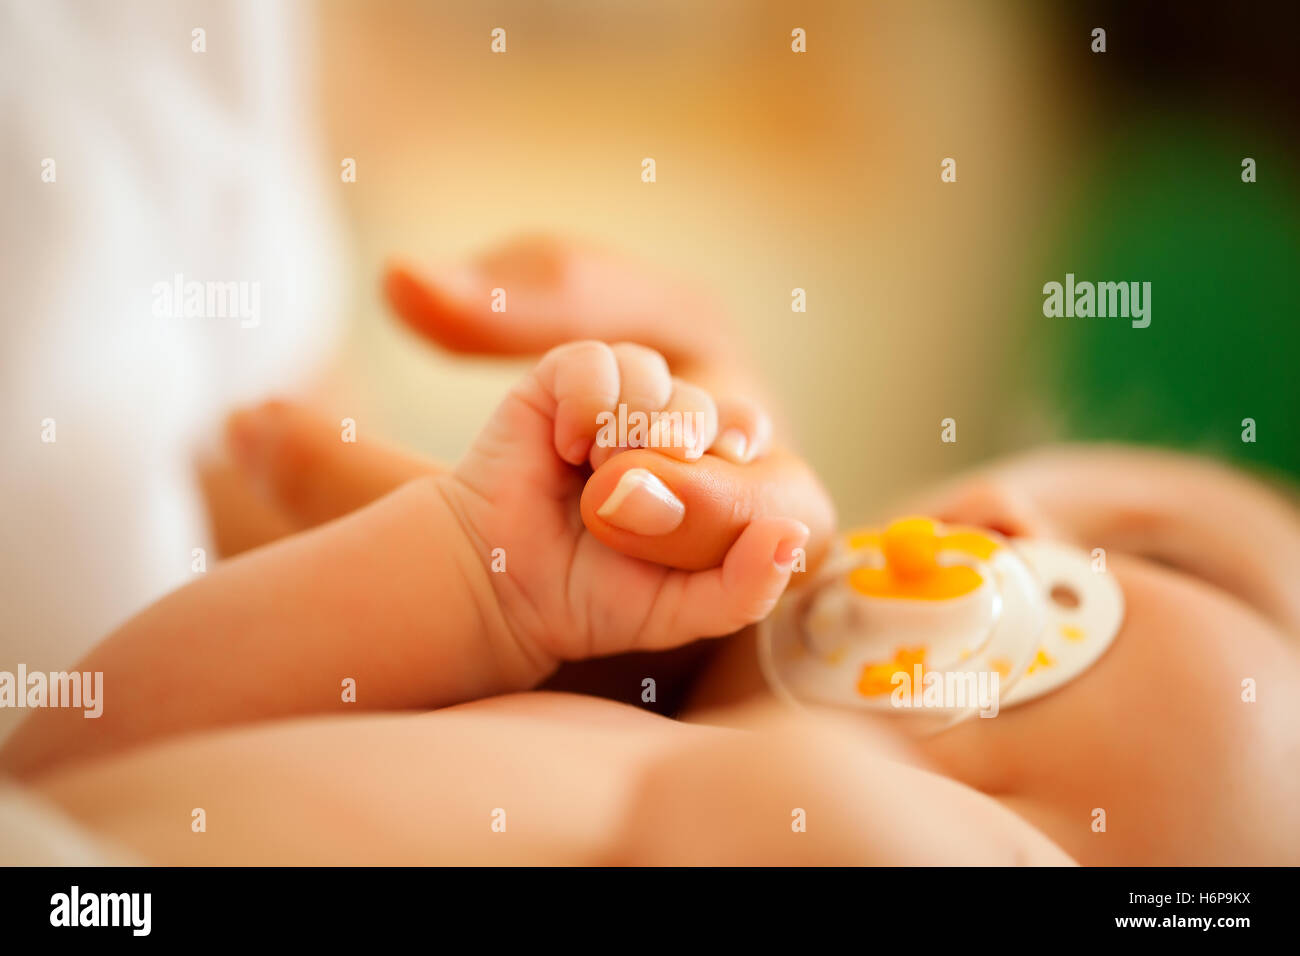 baby with mother reaches for hand - Stock Image